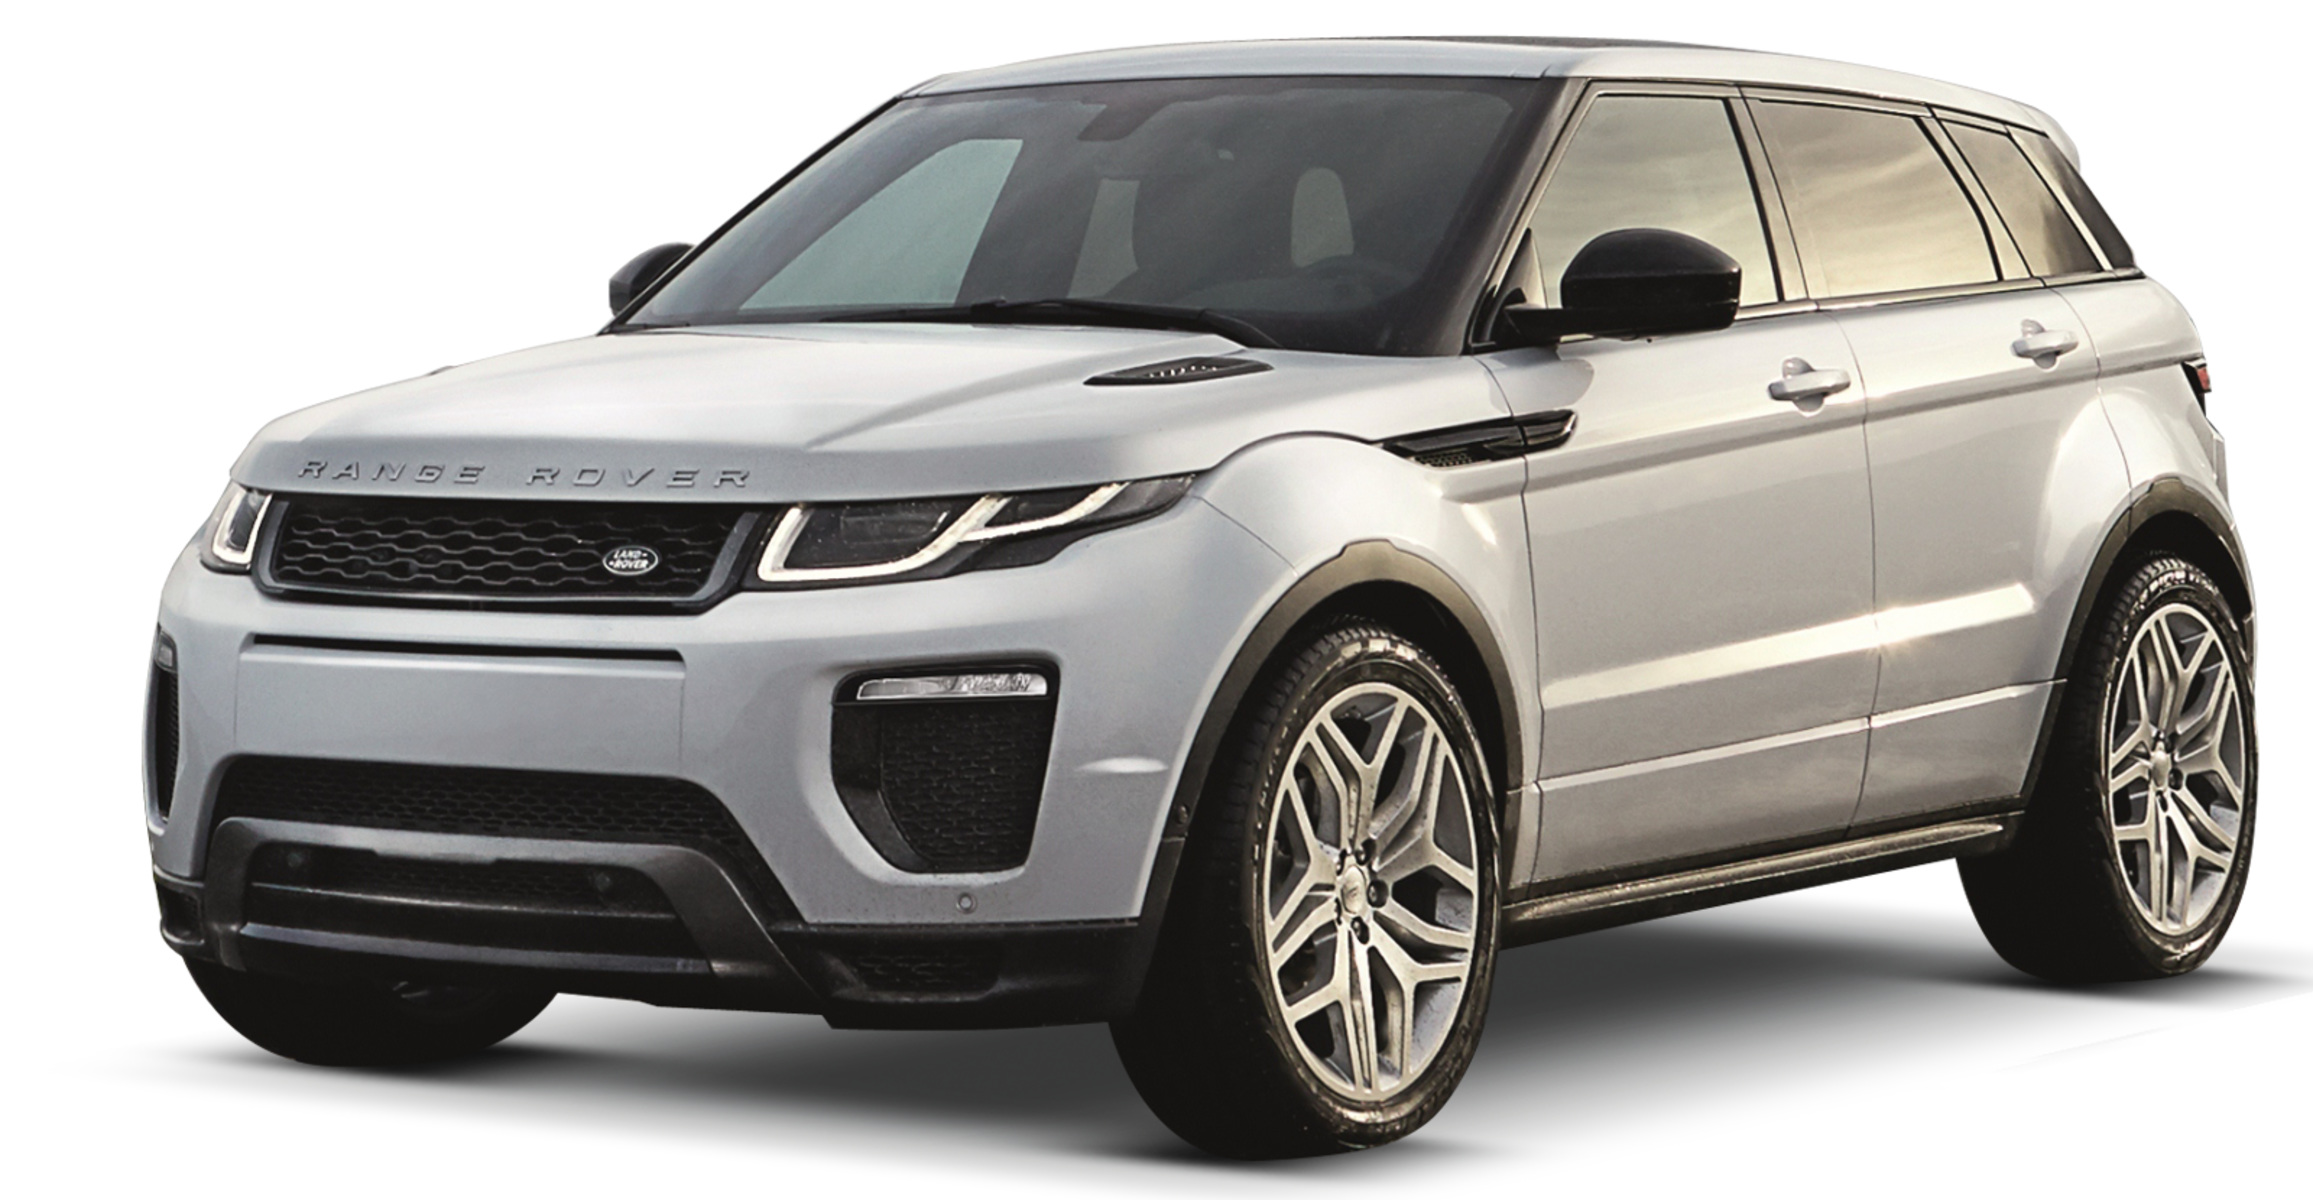 listino land rover range rover evoque prezzo scheda tecnica consumi foto. Black Bedroom Furniture Sets. Home Design Ideas